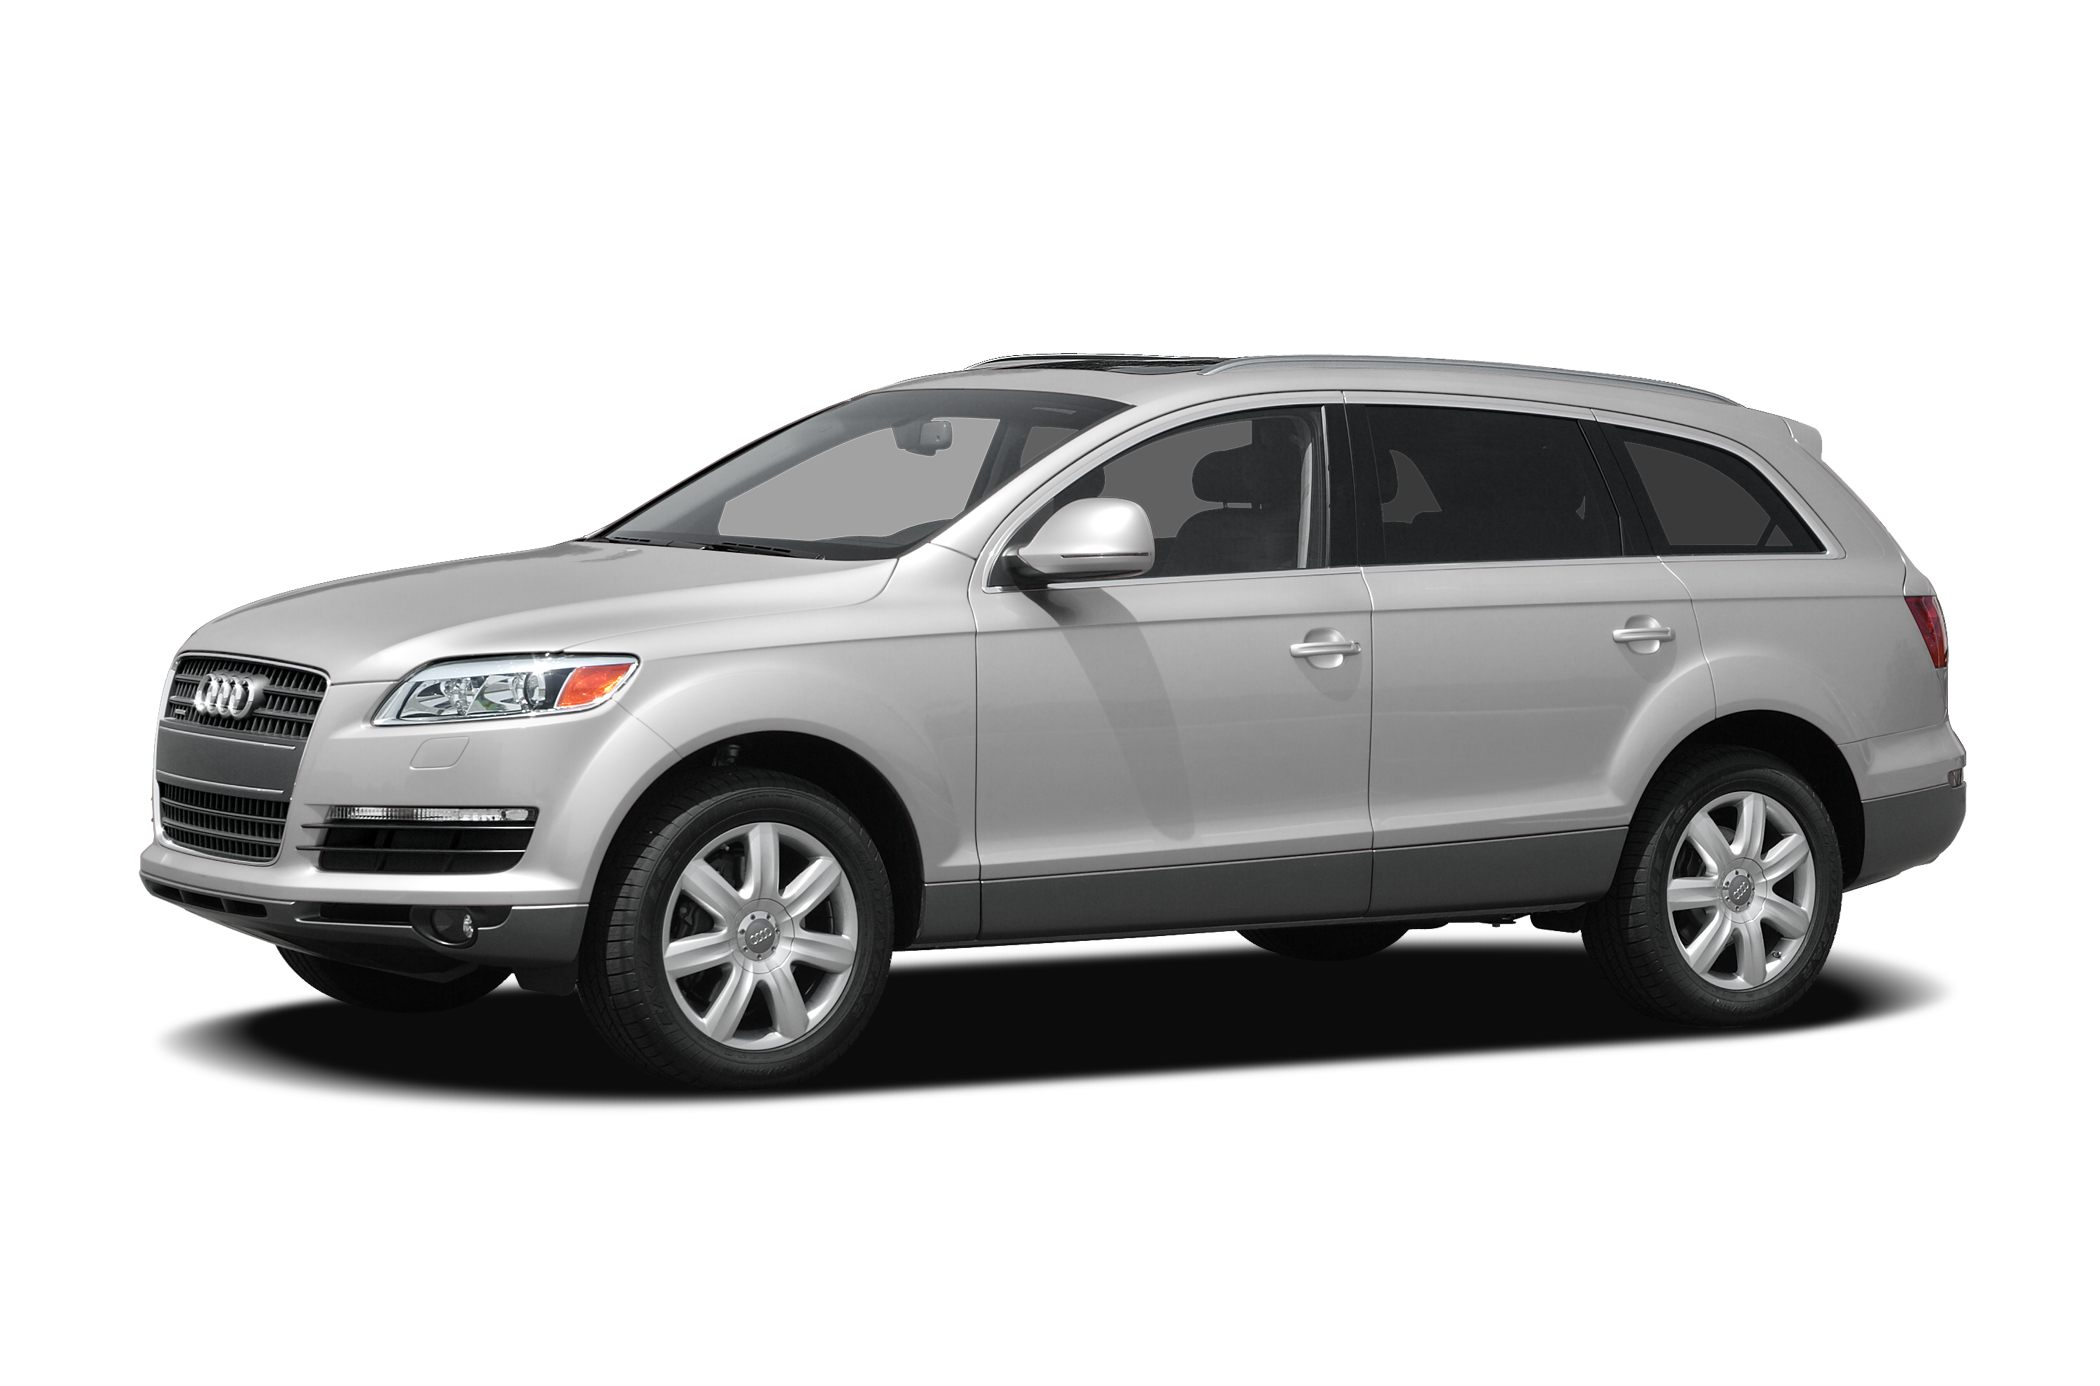 2009 Audi Q7 42 quattro Prestige OUR PRICESYoure probably wondering why our prices are so much